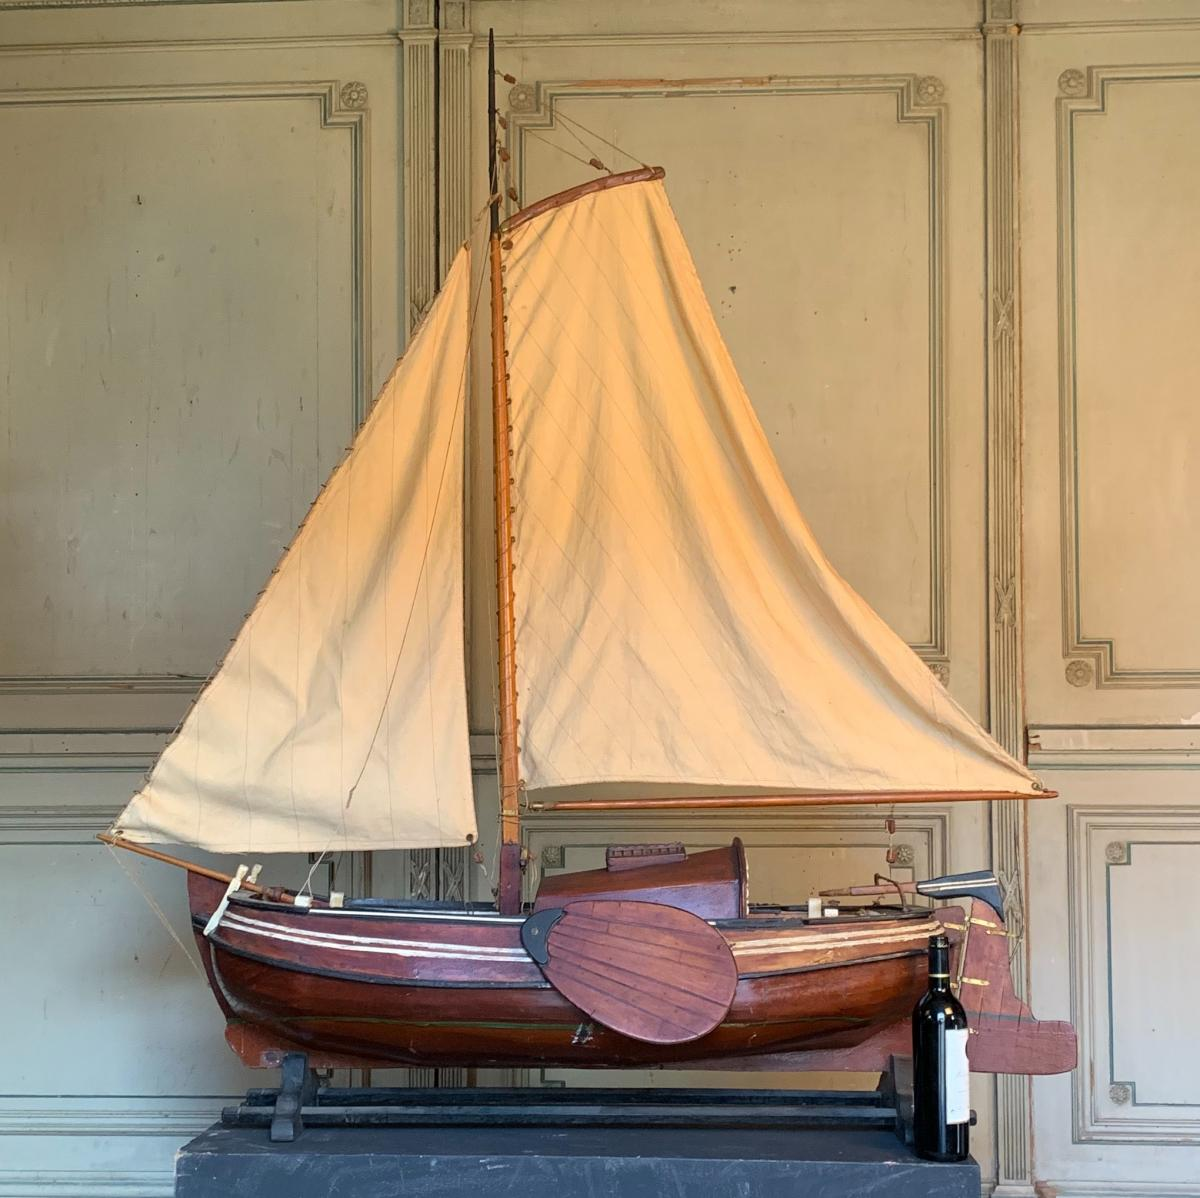 Large Model Sailboat From The North Sea, Boerier